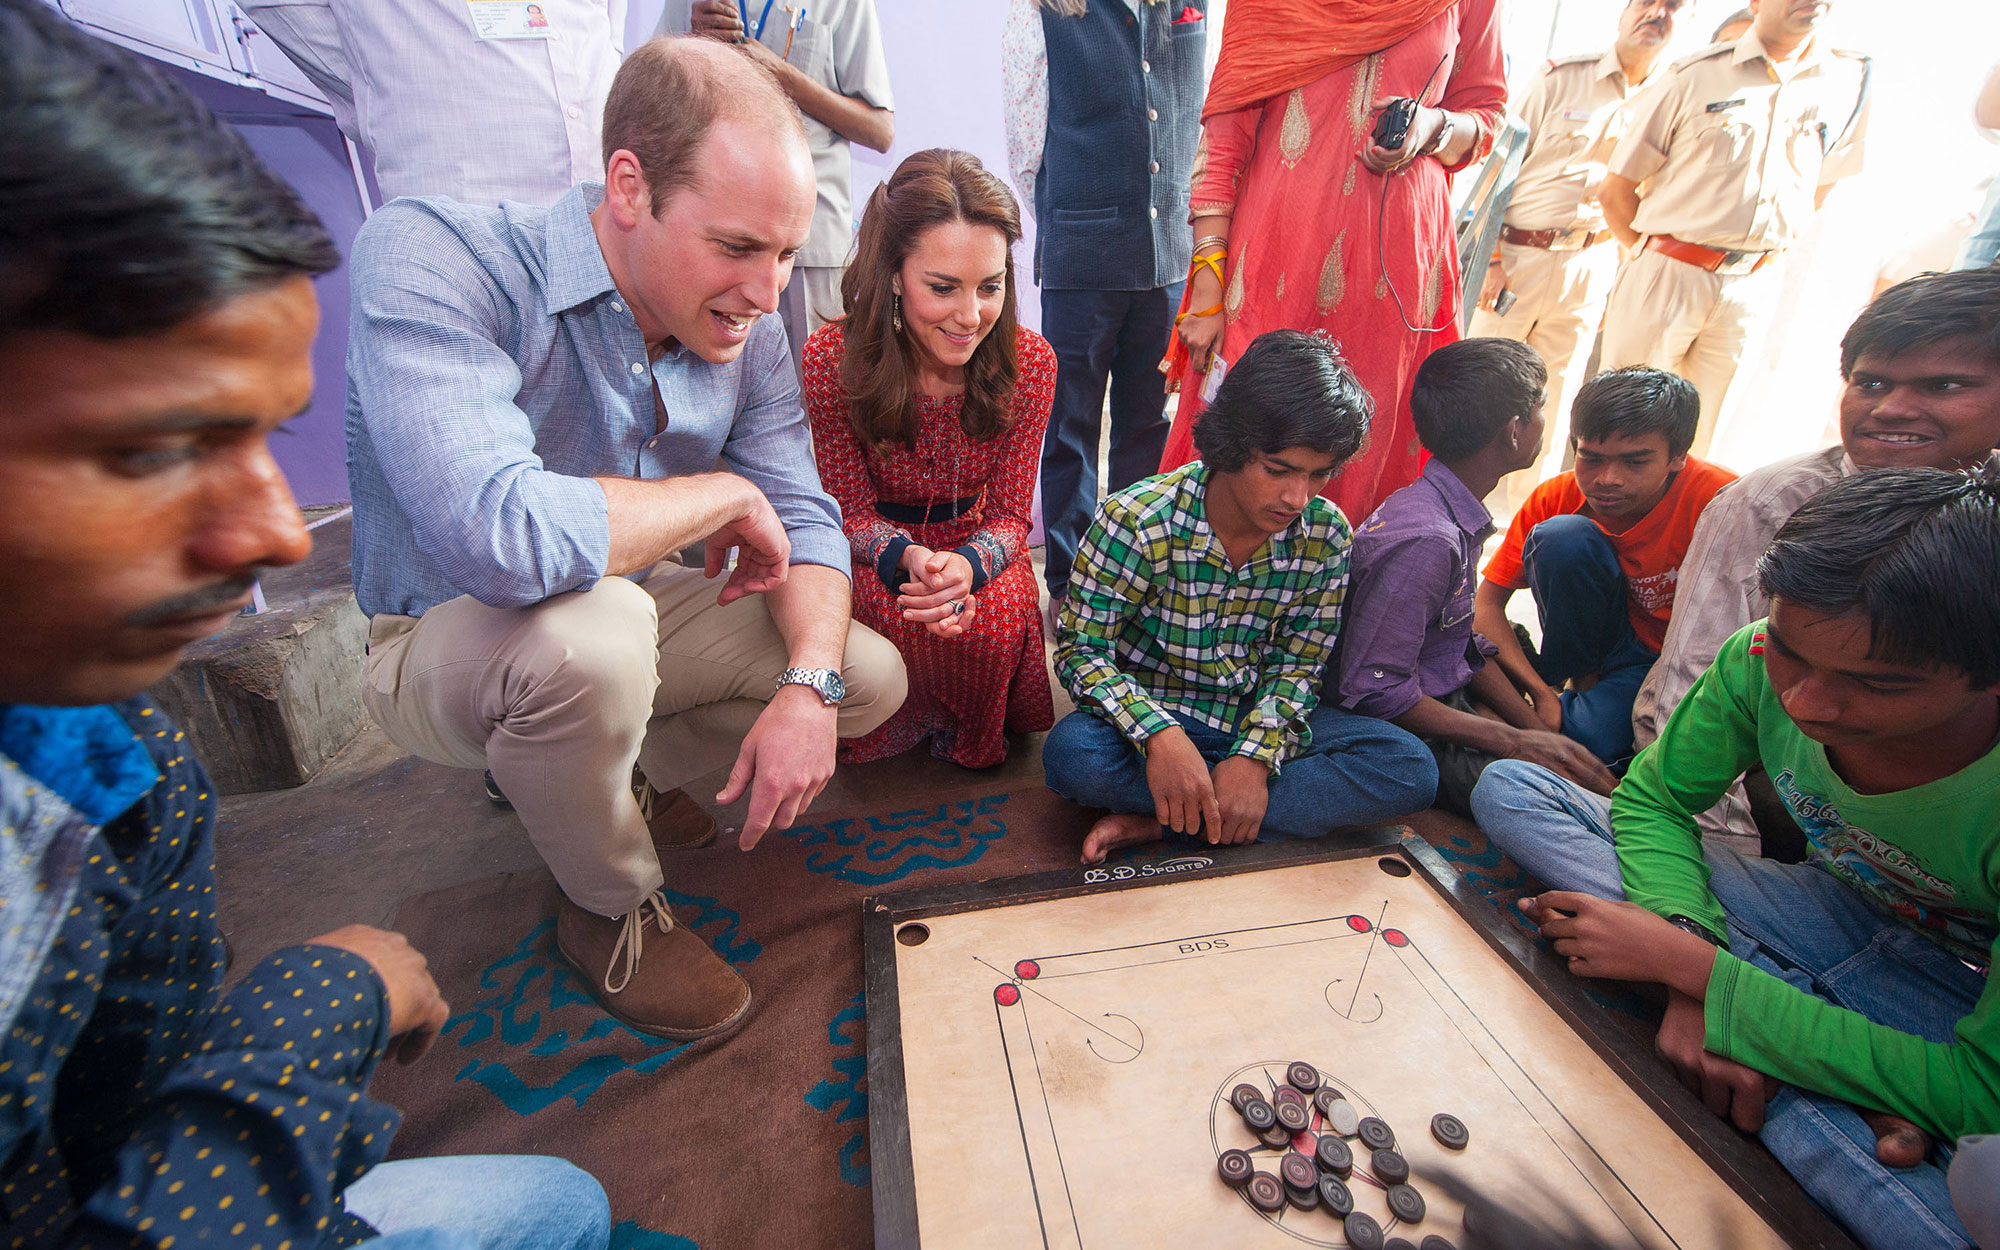 Prince William and Kate Middleton Embark on their Royal Tour of India and Bhutan: Playing Games